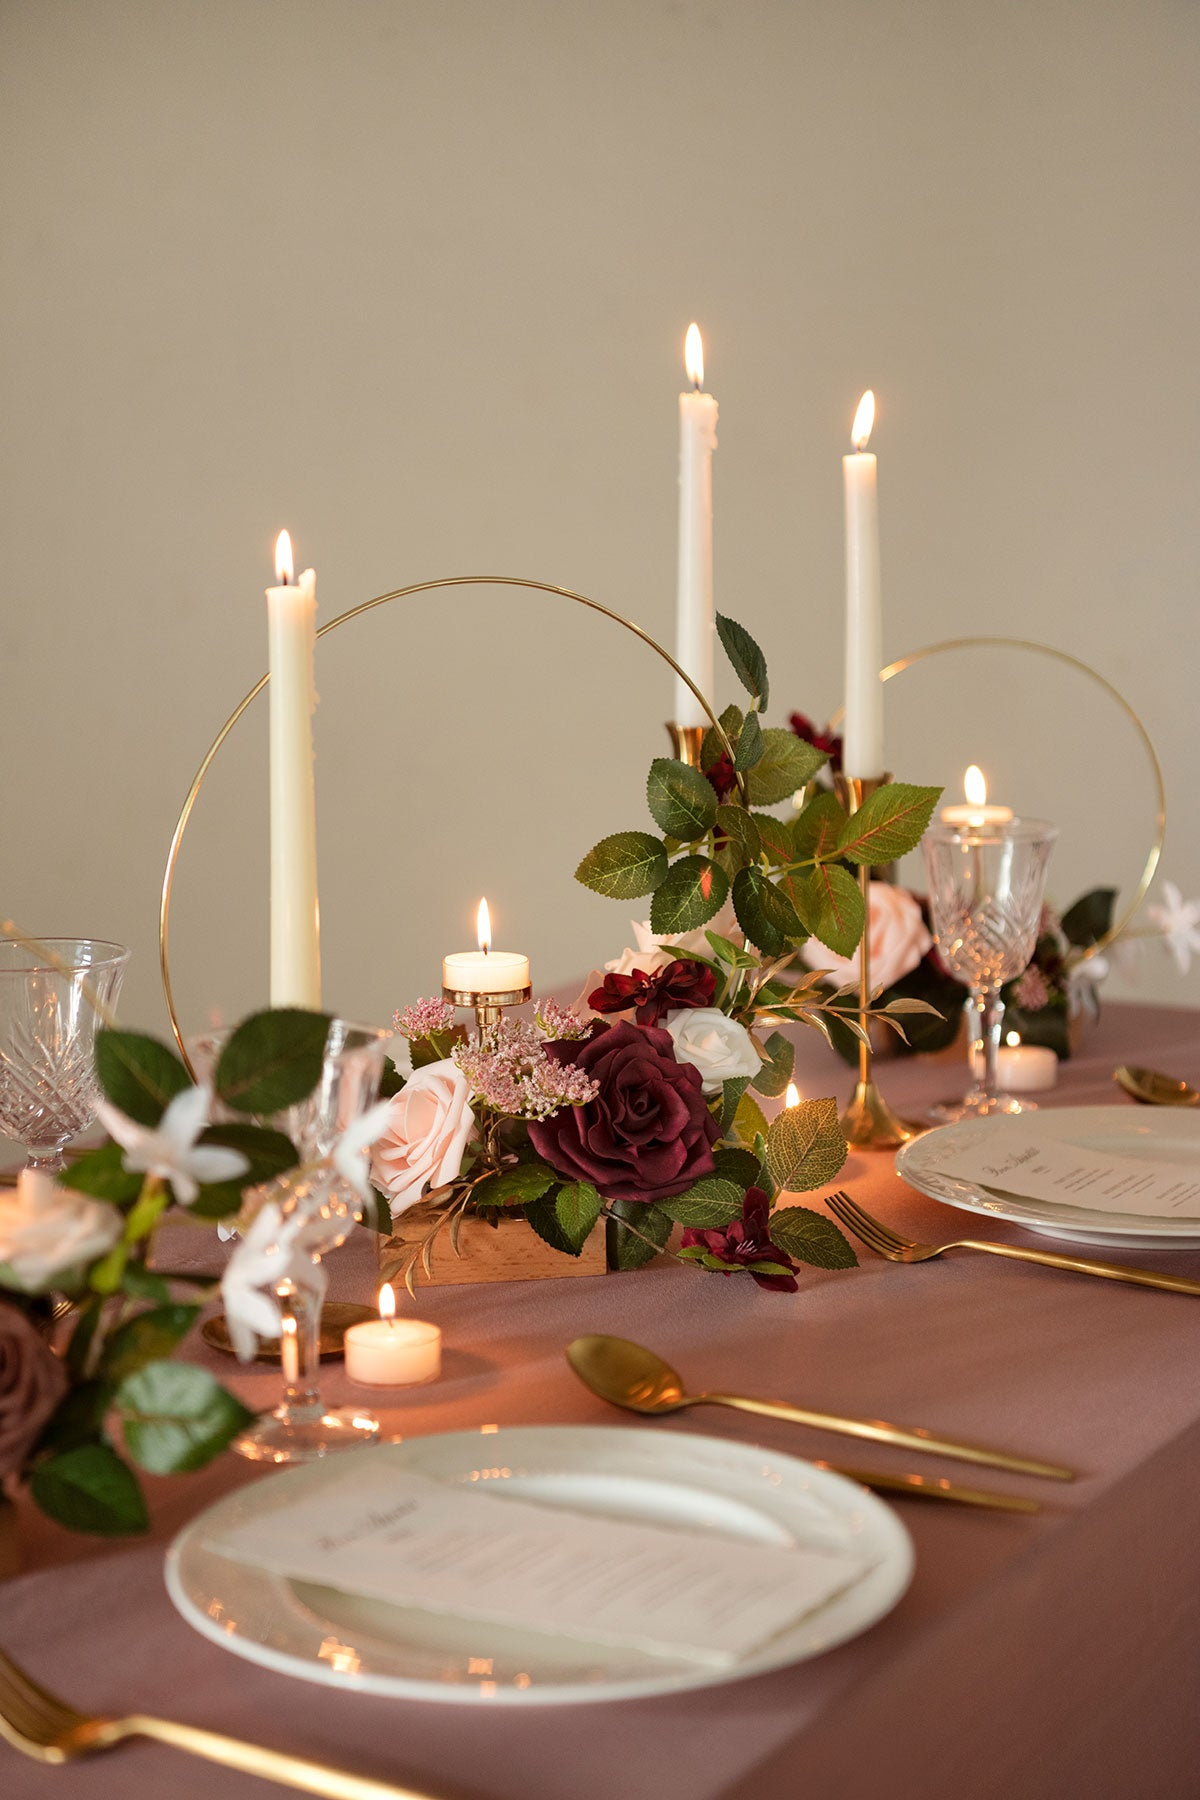 DIY Centerpiece Kits with Candle Holder (Set of 3)